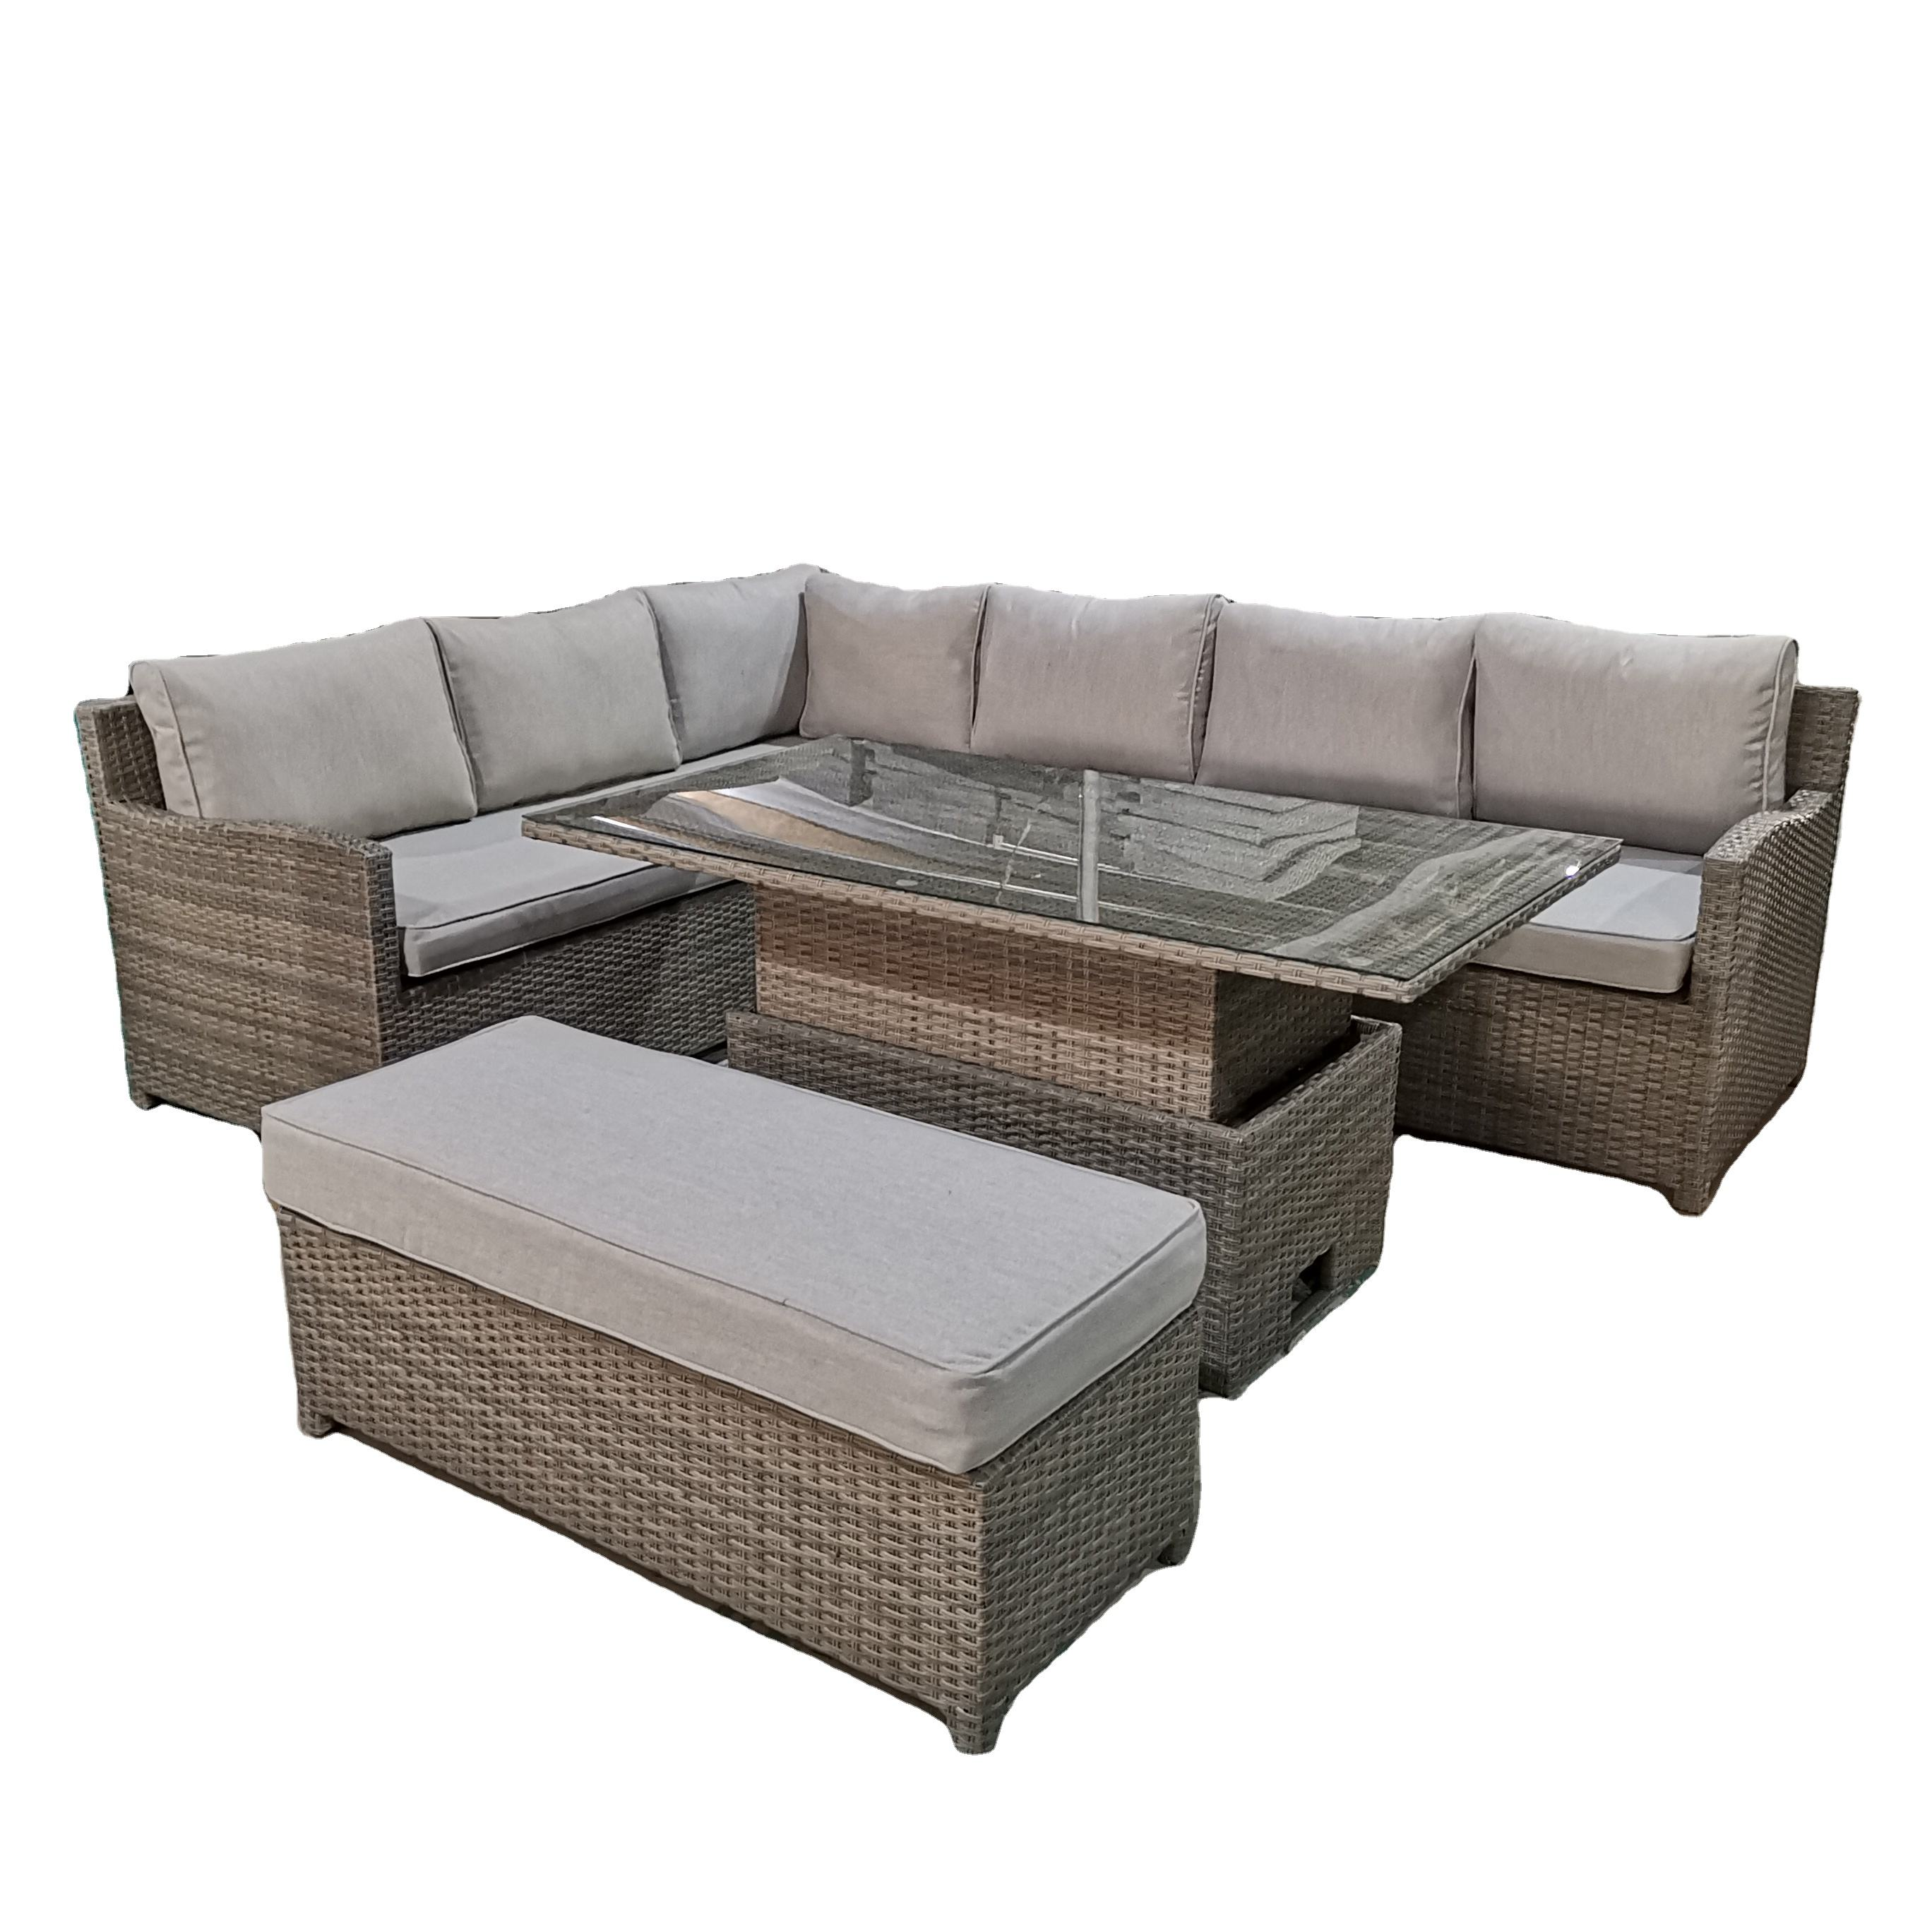 Rattan High Back Large Corner Sofa Set with Rising Table Corner Dining Set with Adjustable Height Table